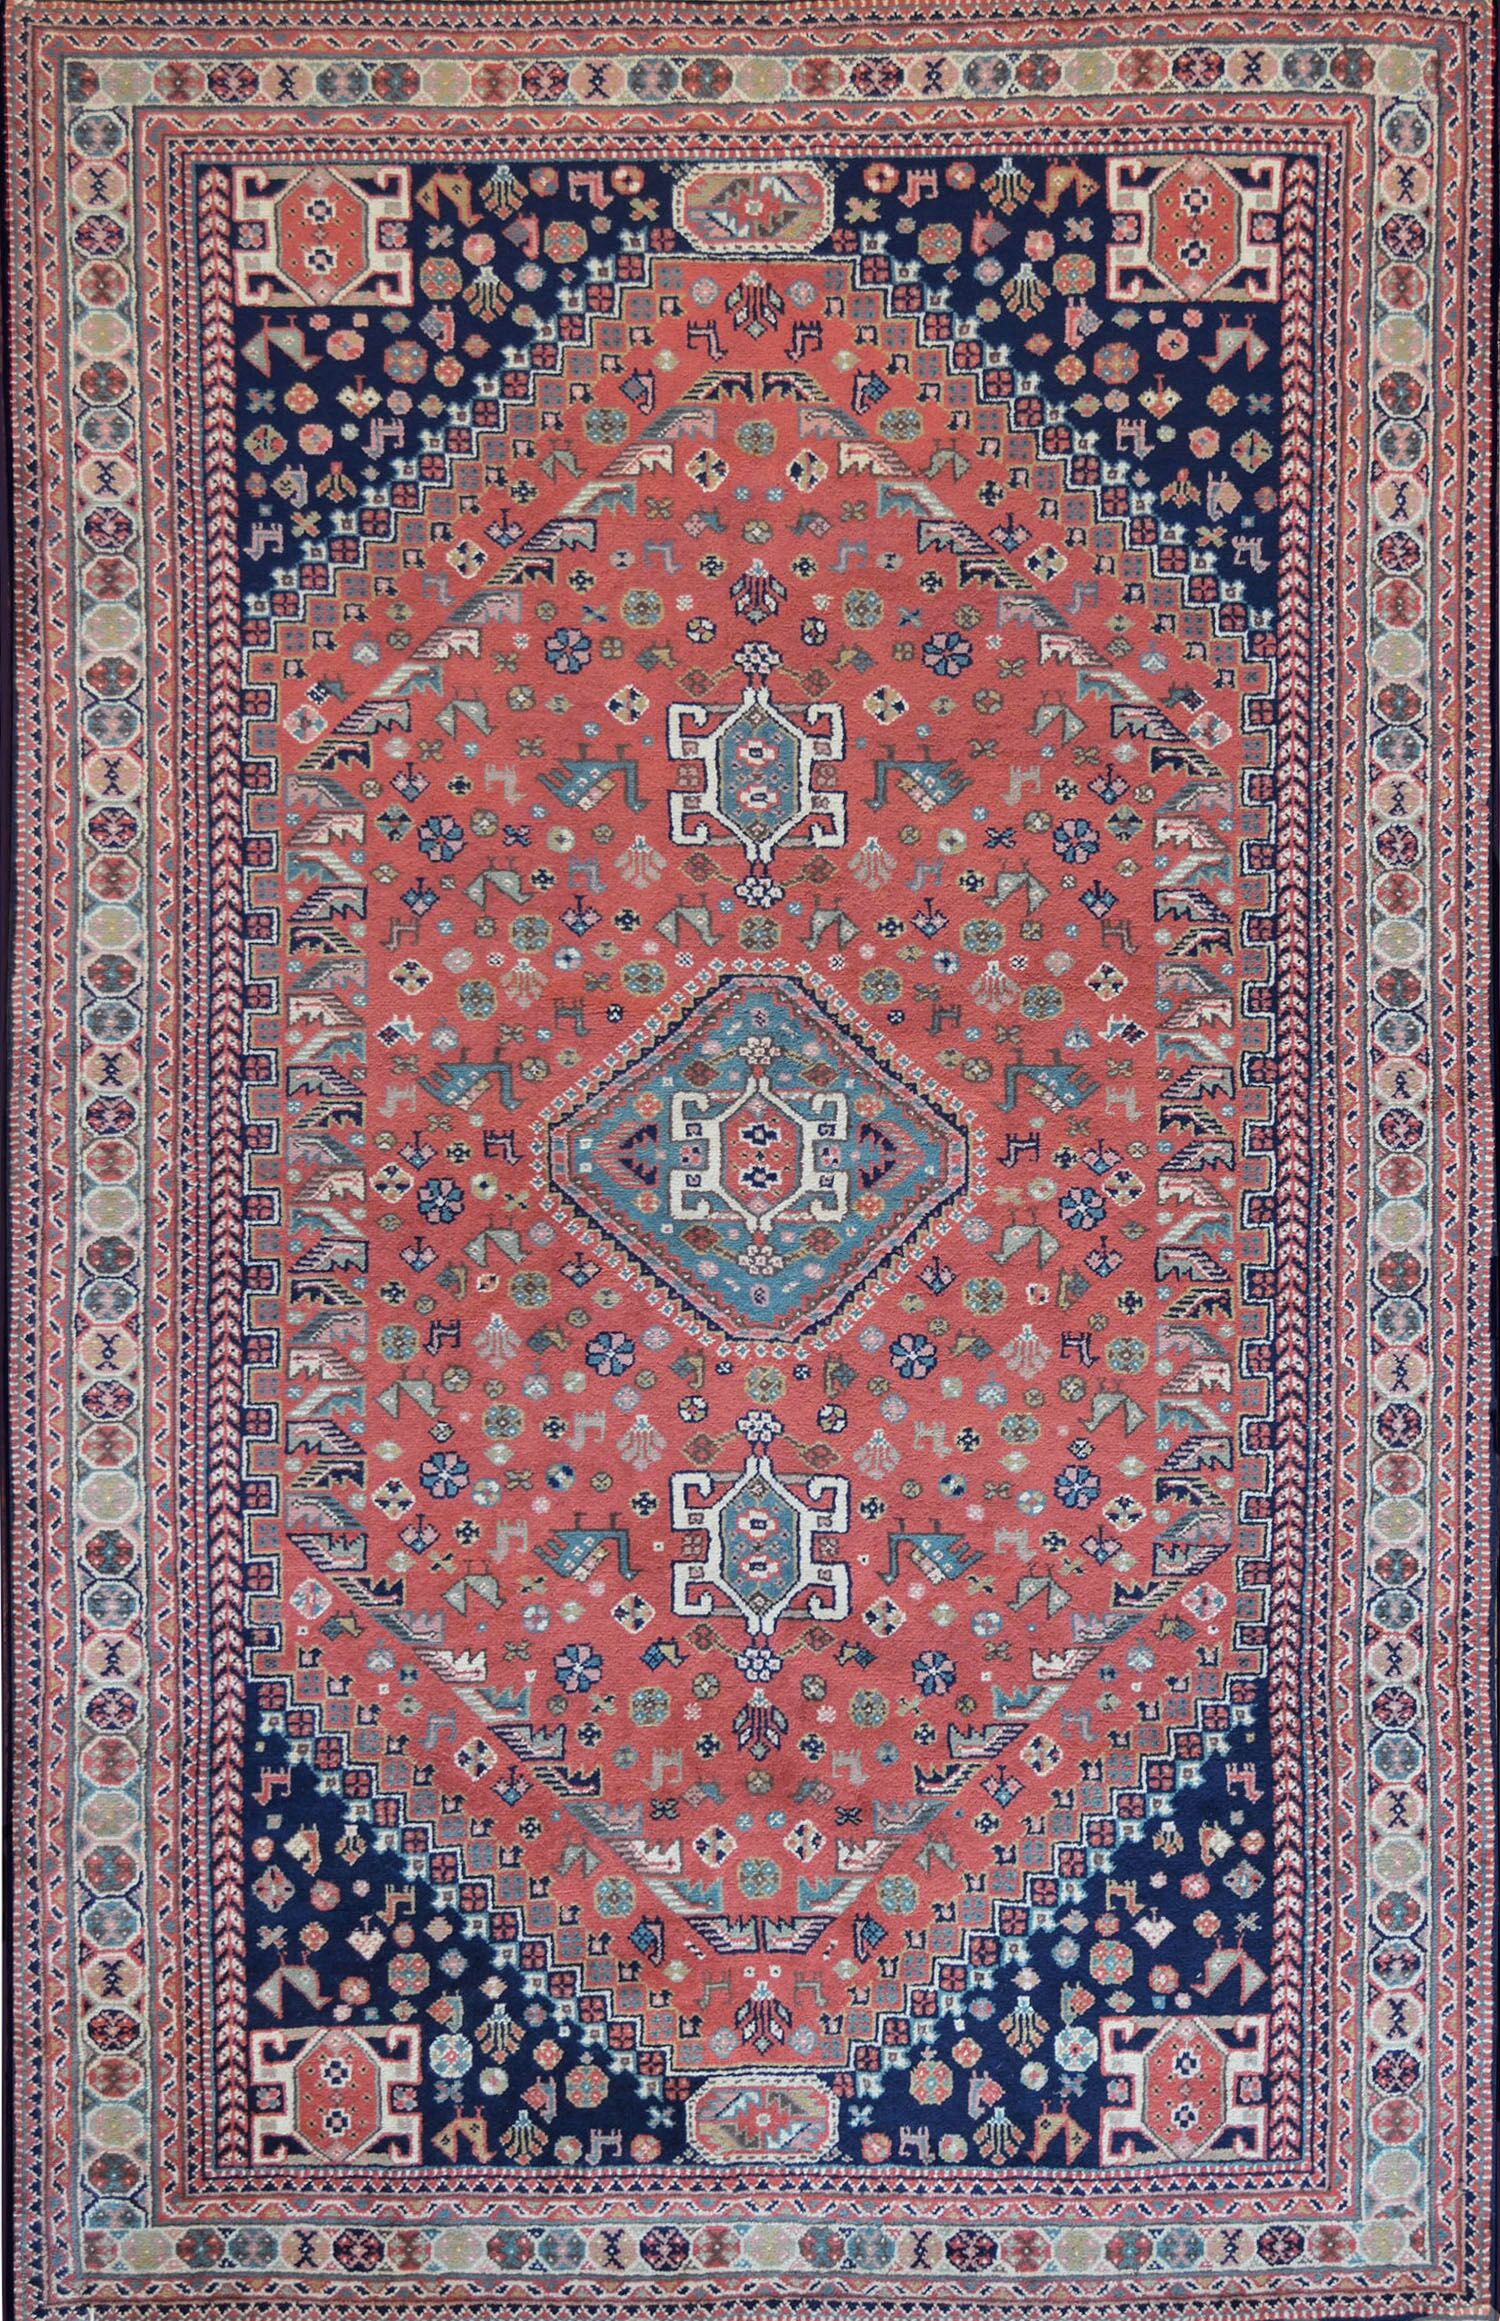 One-of-a-Kind Quality Handwoven Wool Red Indoor Area Rug